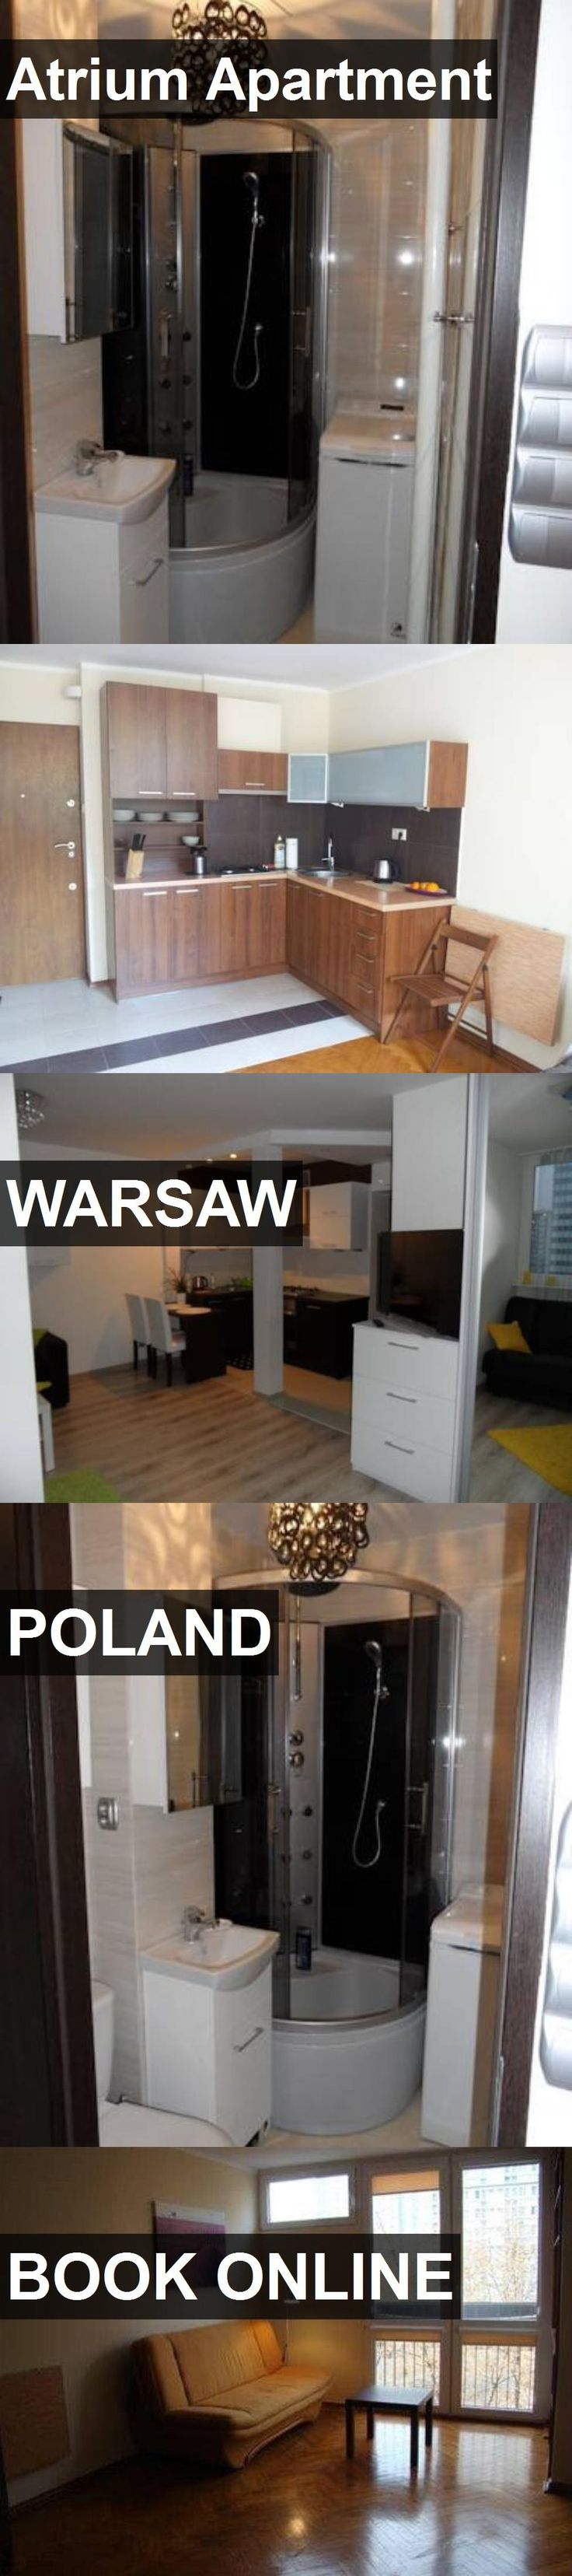 Hotel Atrium Apartment in Warsaw, Poland. For more information, photos, reviews and best prices please follow the link. #Poland #Warsaw #AtriumApartment #hotel #travel #vacation